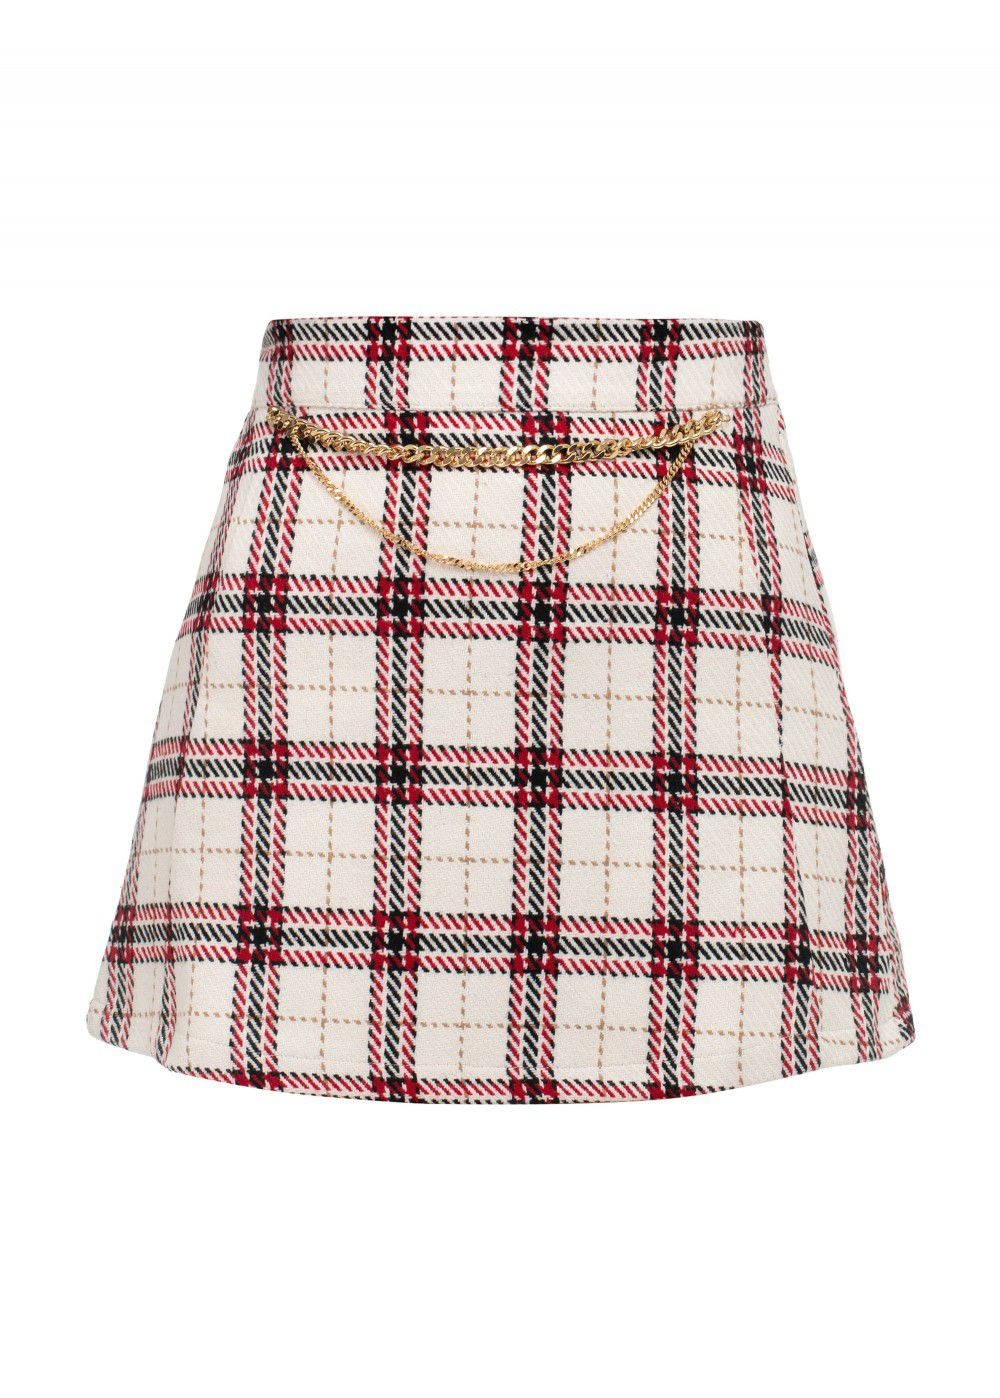 Sister Jane Mini Skirt